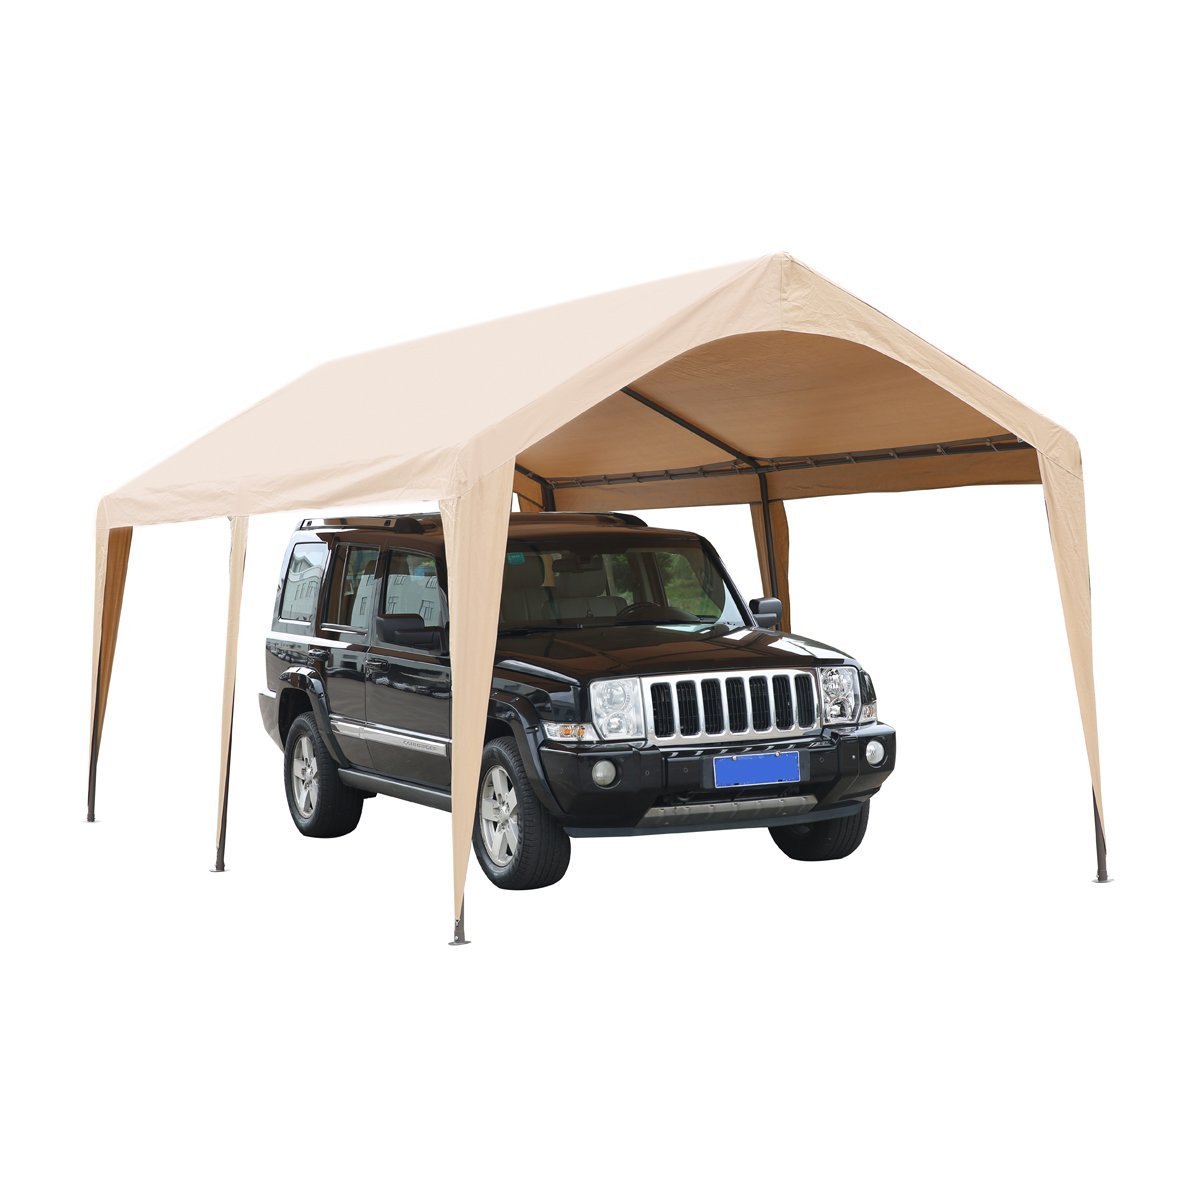 Zimtown 10 x 20 FT Carport Car Auto Garage Shelter Cover Canopy Tent w/ Foot Cloth Khaki